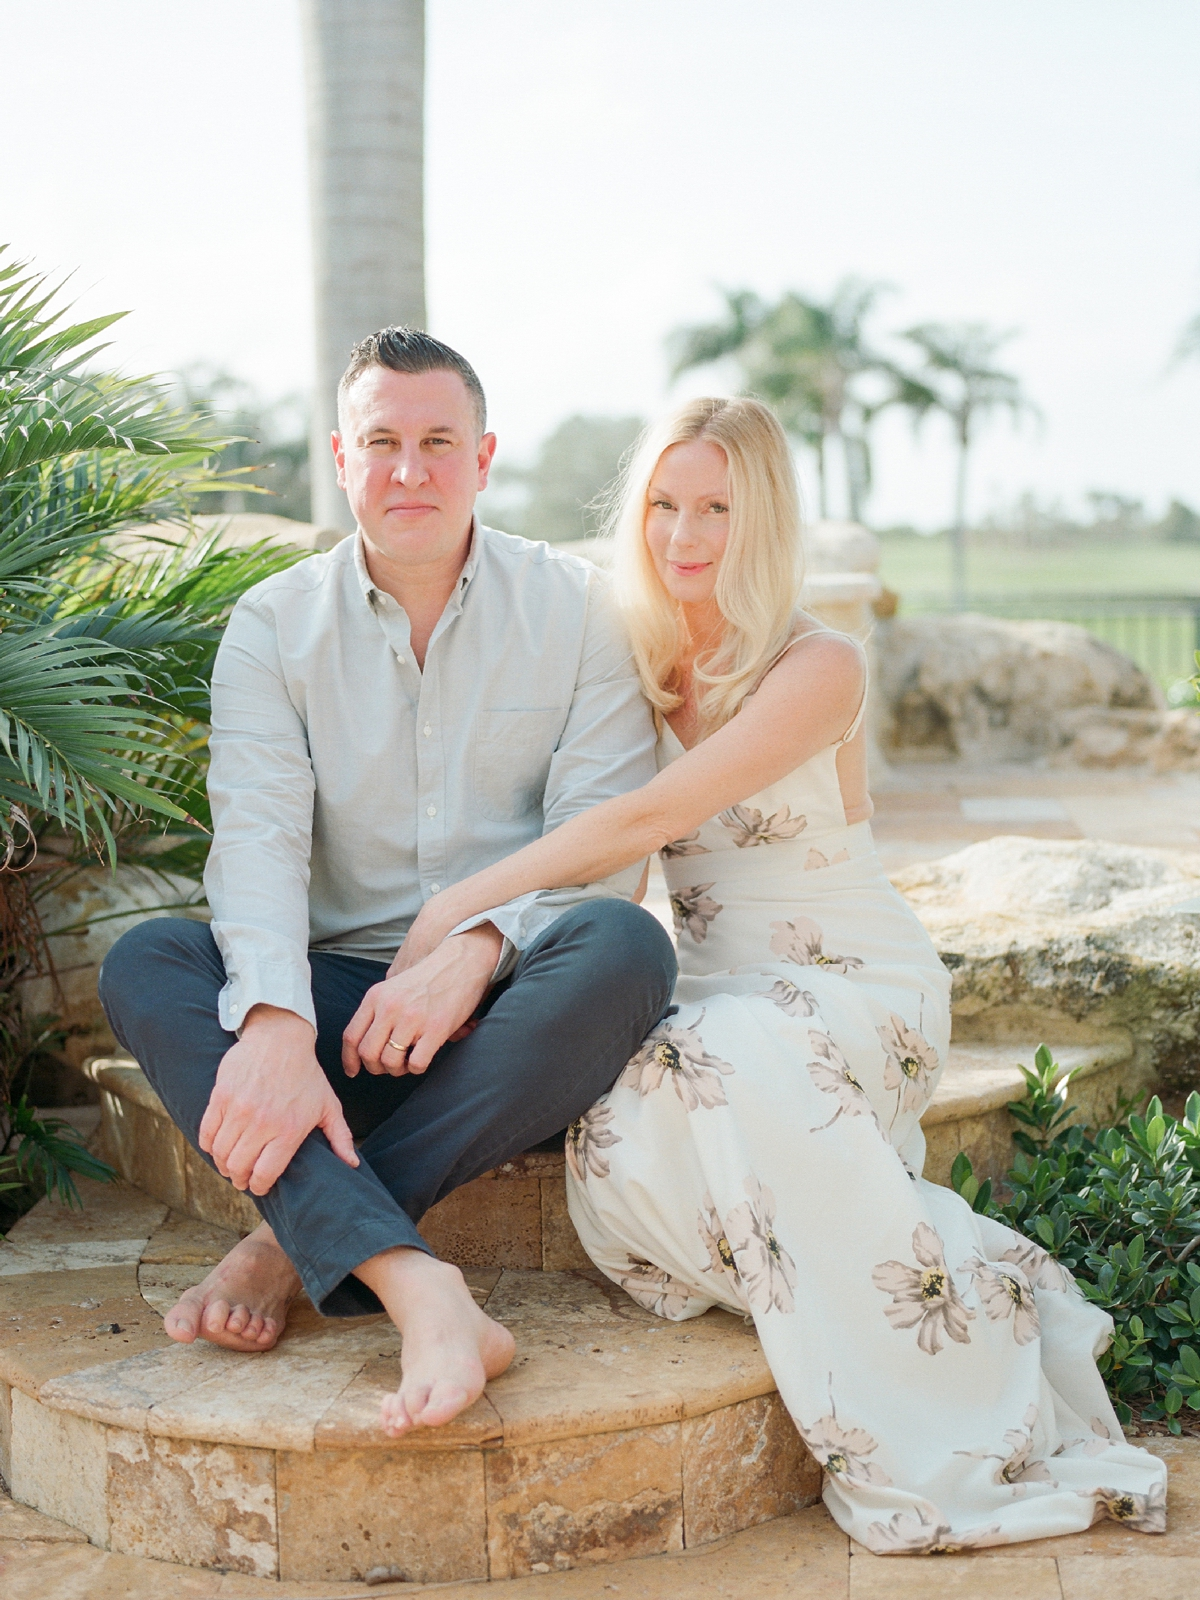 admirals_cove_jupiter_family_photographer_jupiter_beach_shannon_griffin_0014.jpg